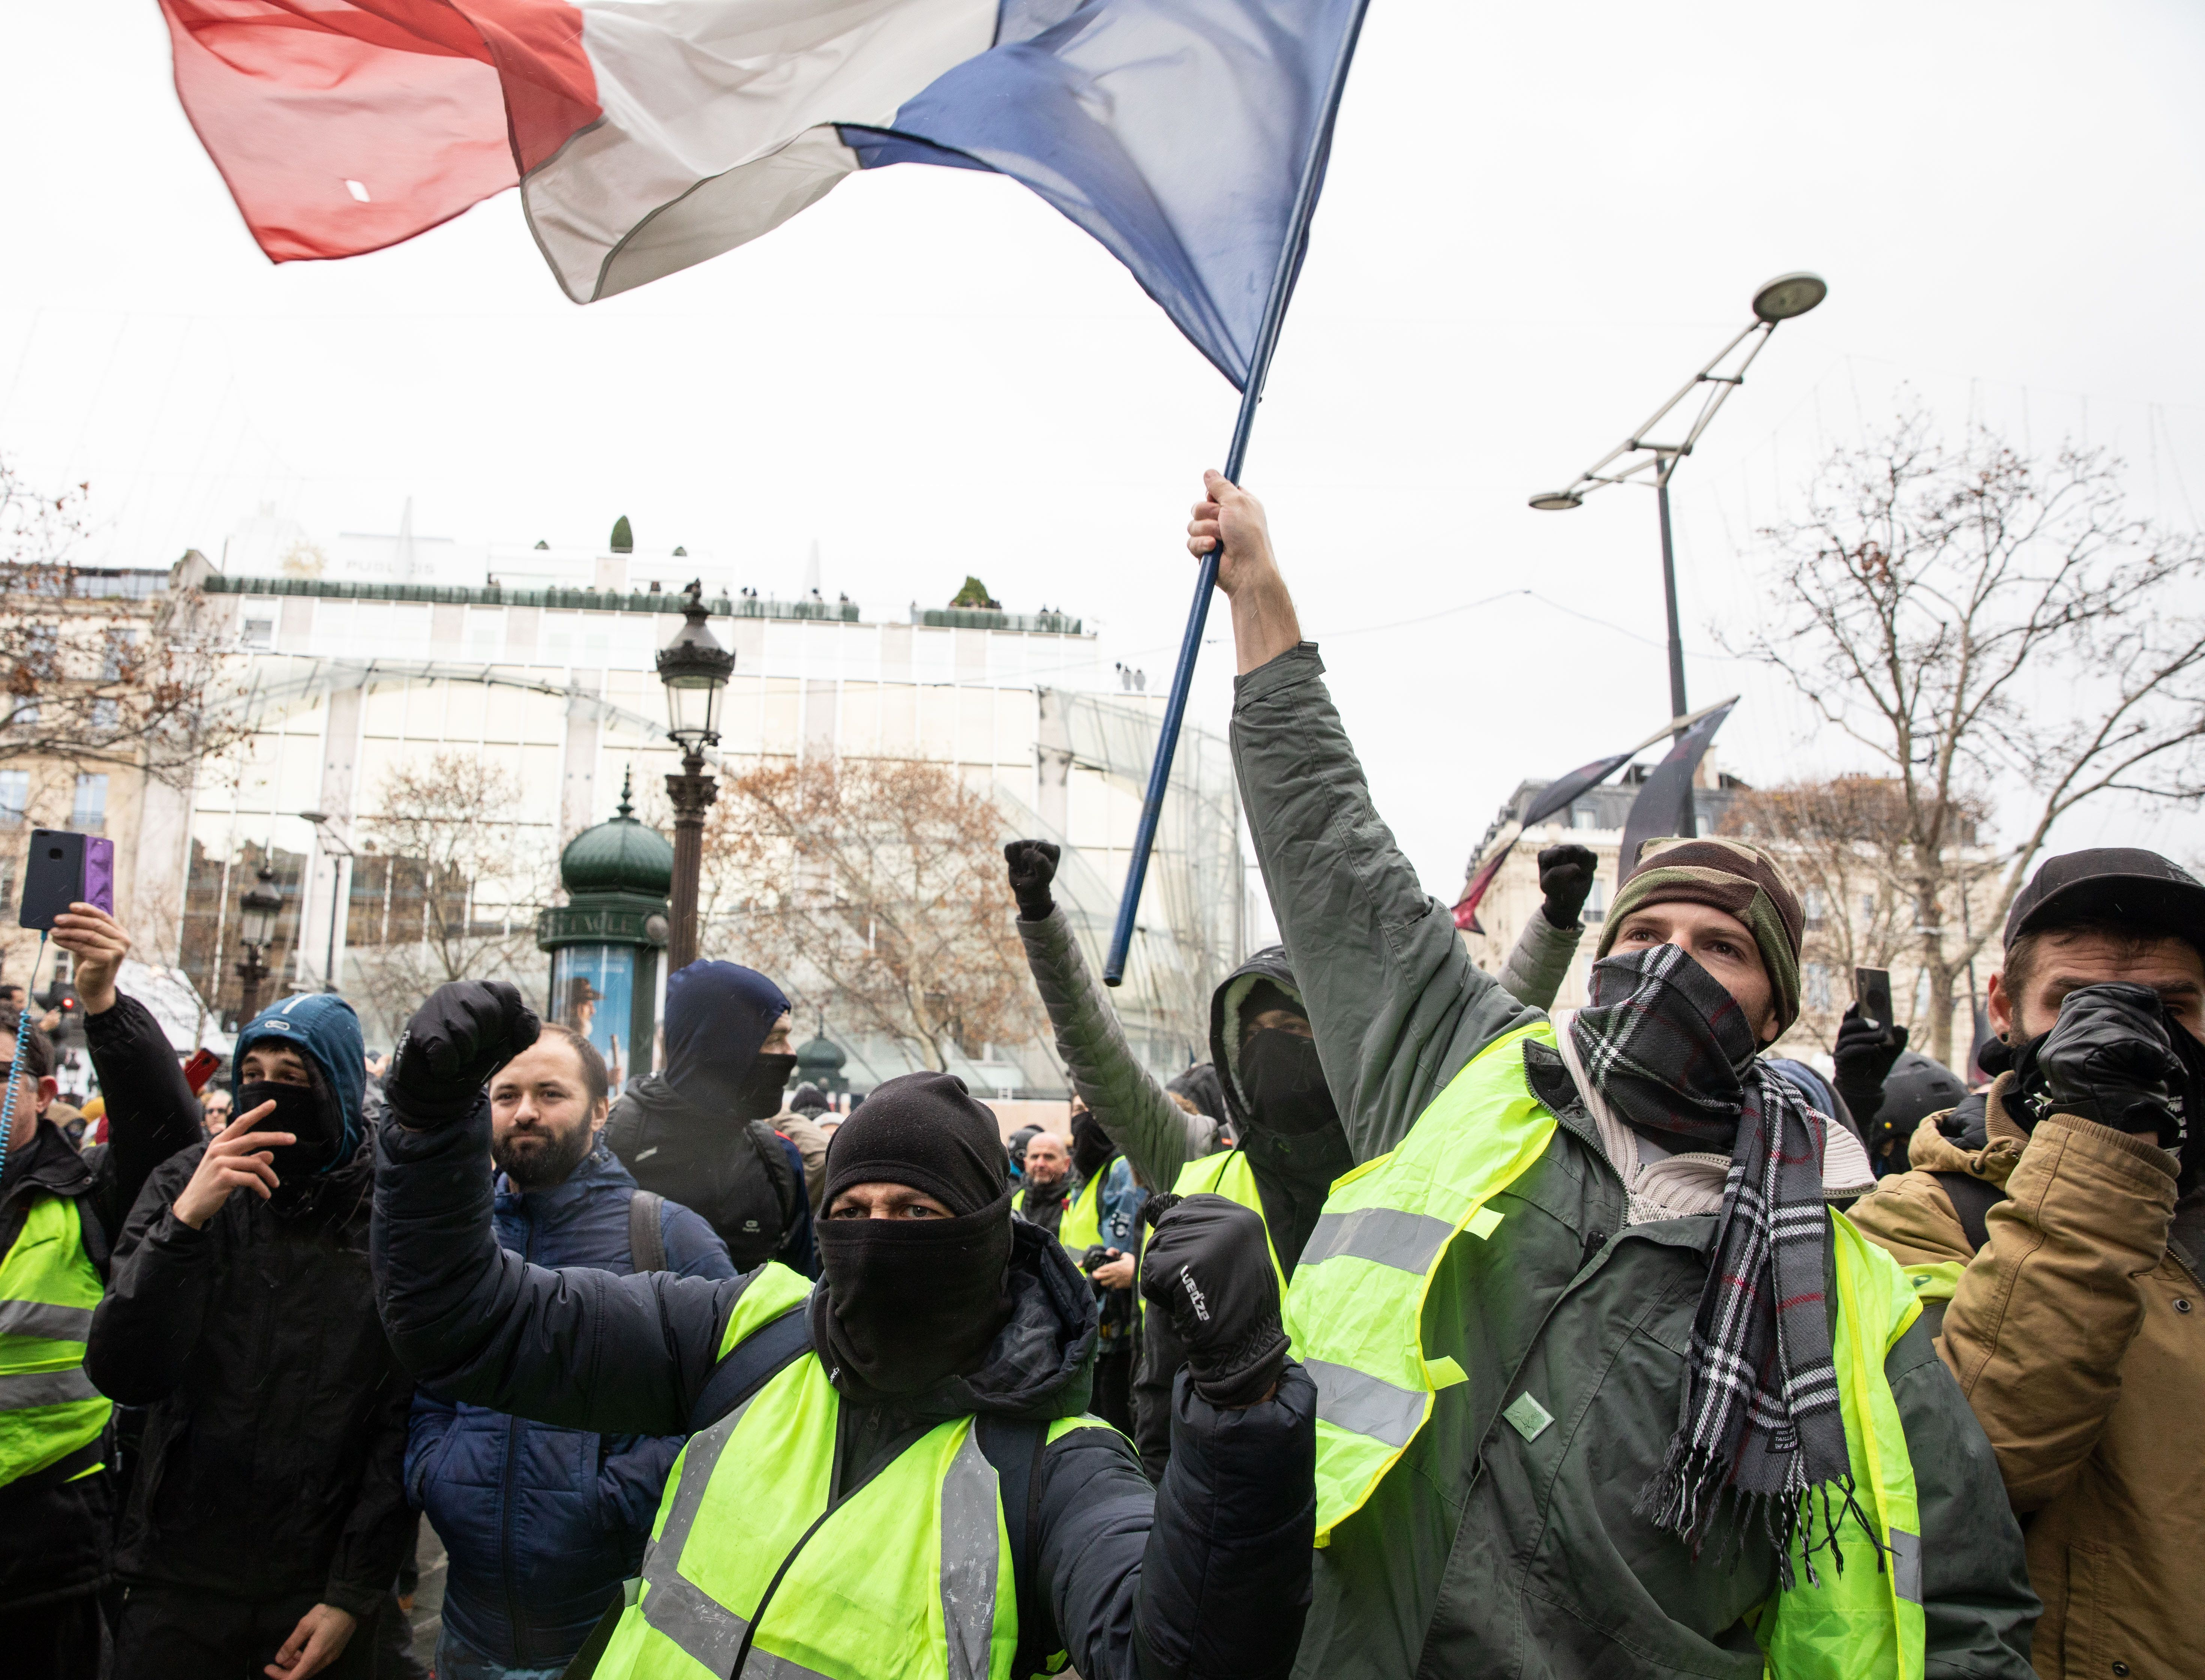 Protesters wearing yellow vests chant slogans and wave the French national flag, during the anti-government demonstrations in Paris, France, December 08, 2018. The withdrawal of French President Emmanuel Macron from implementing the Polluting Fuels tax, had very little to no effect on calming the tense situation in France as mass violent demonstrations continue to take place through several flashpoints across the country. In the French capital, members of the 'Yellow Jackets' movement along side high school students (protesting the education reform) and other citizens took to the streets.